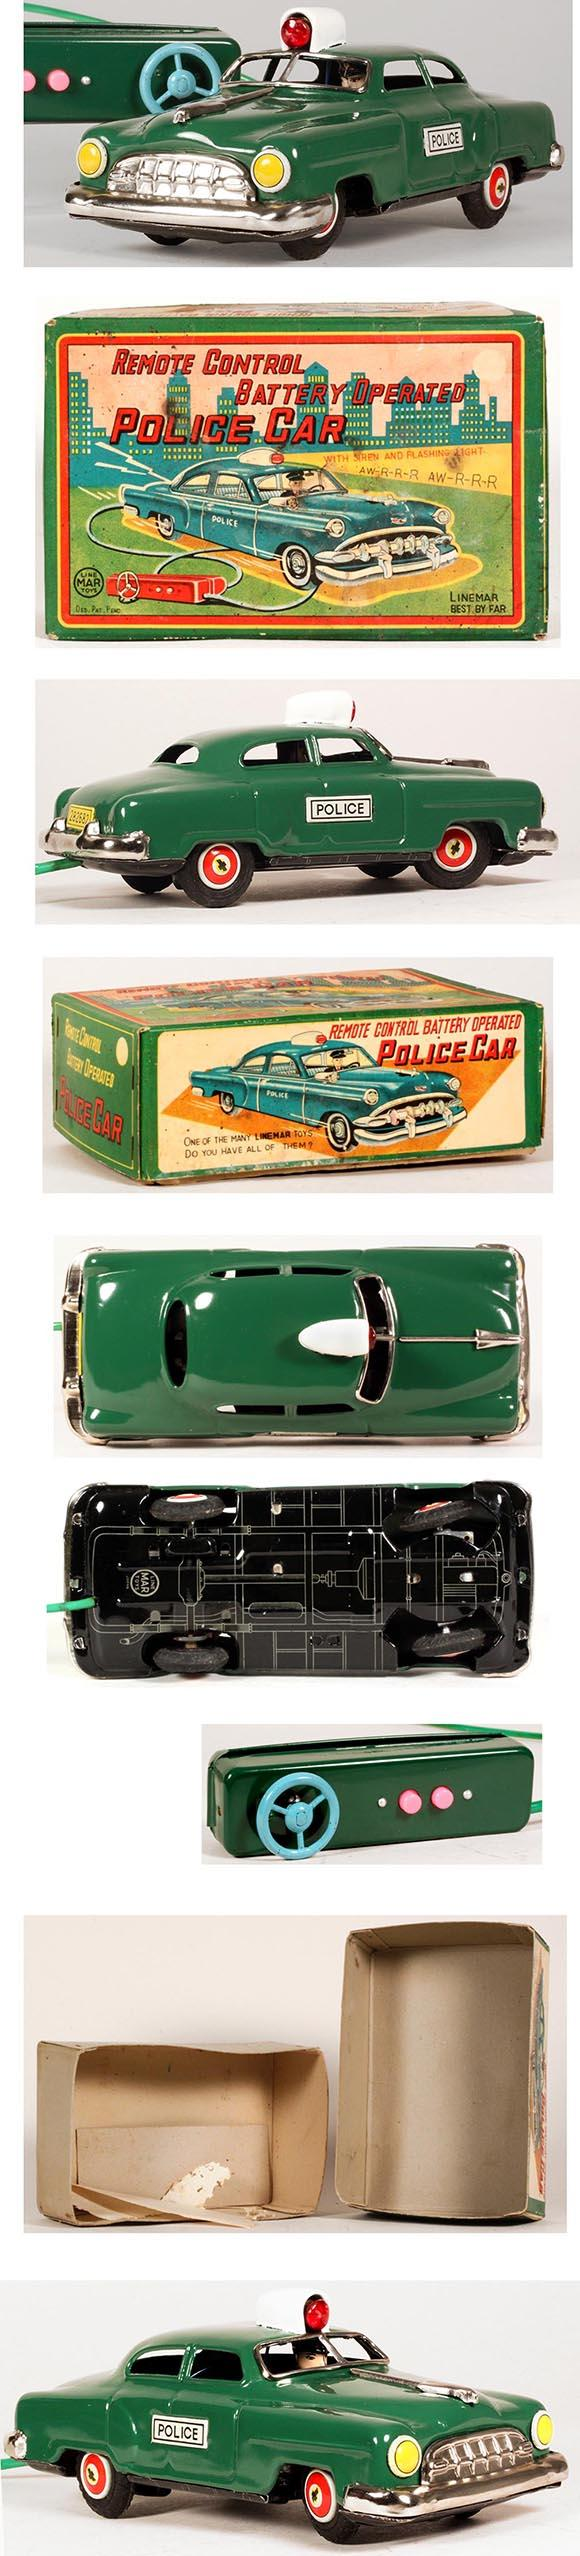 1954 Linemar, Battery Operated Chevrolet Police Car in Original Box